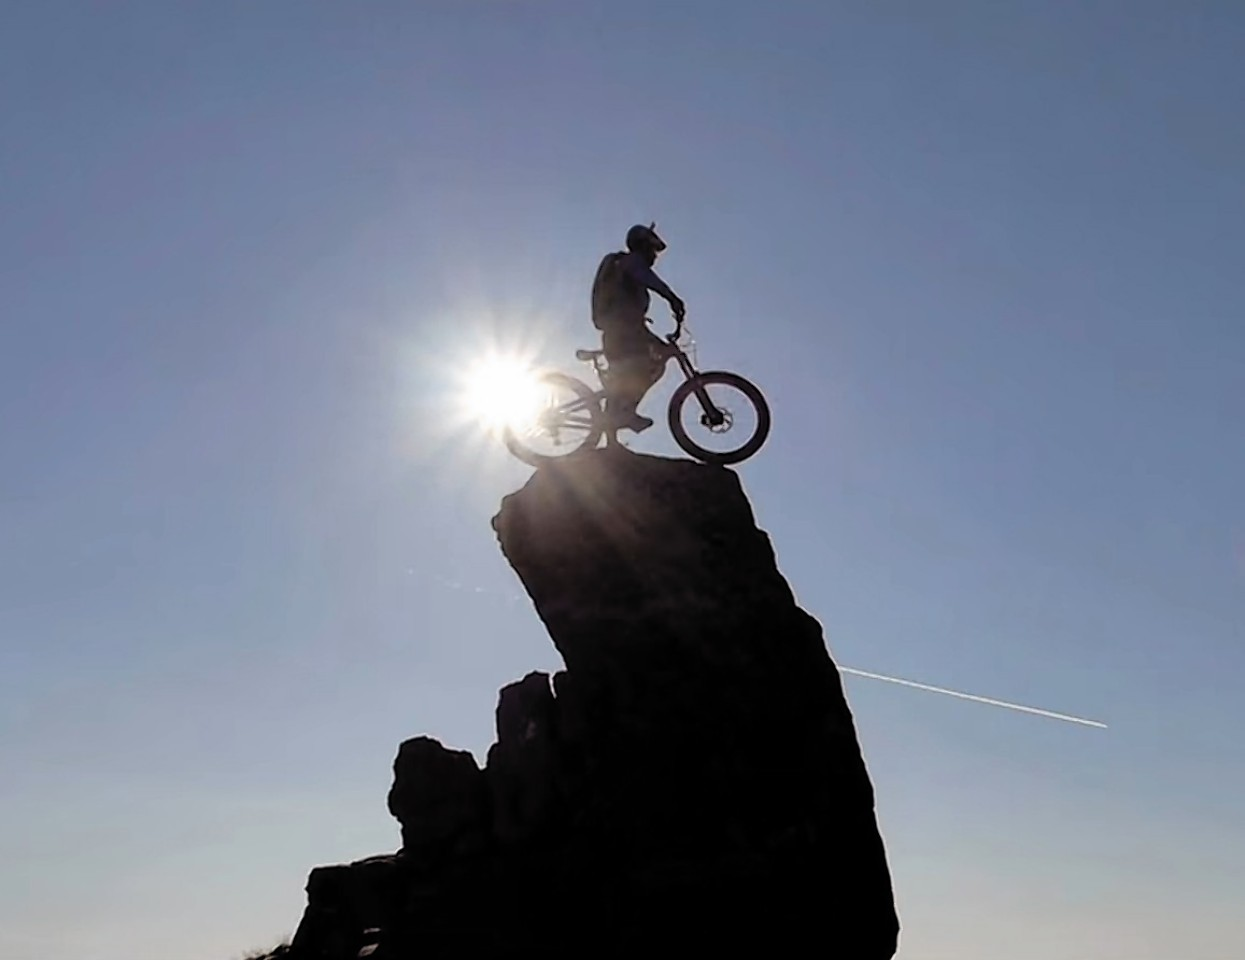 Danny MacAskill last year released the stunning video, The Ridge